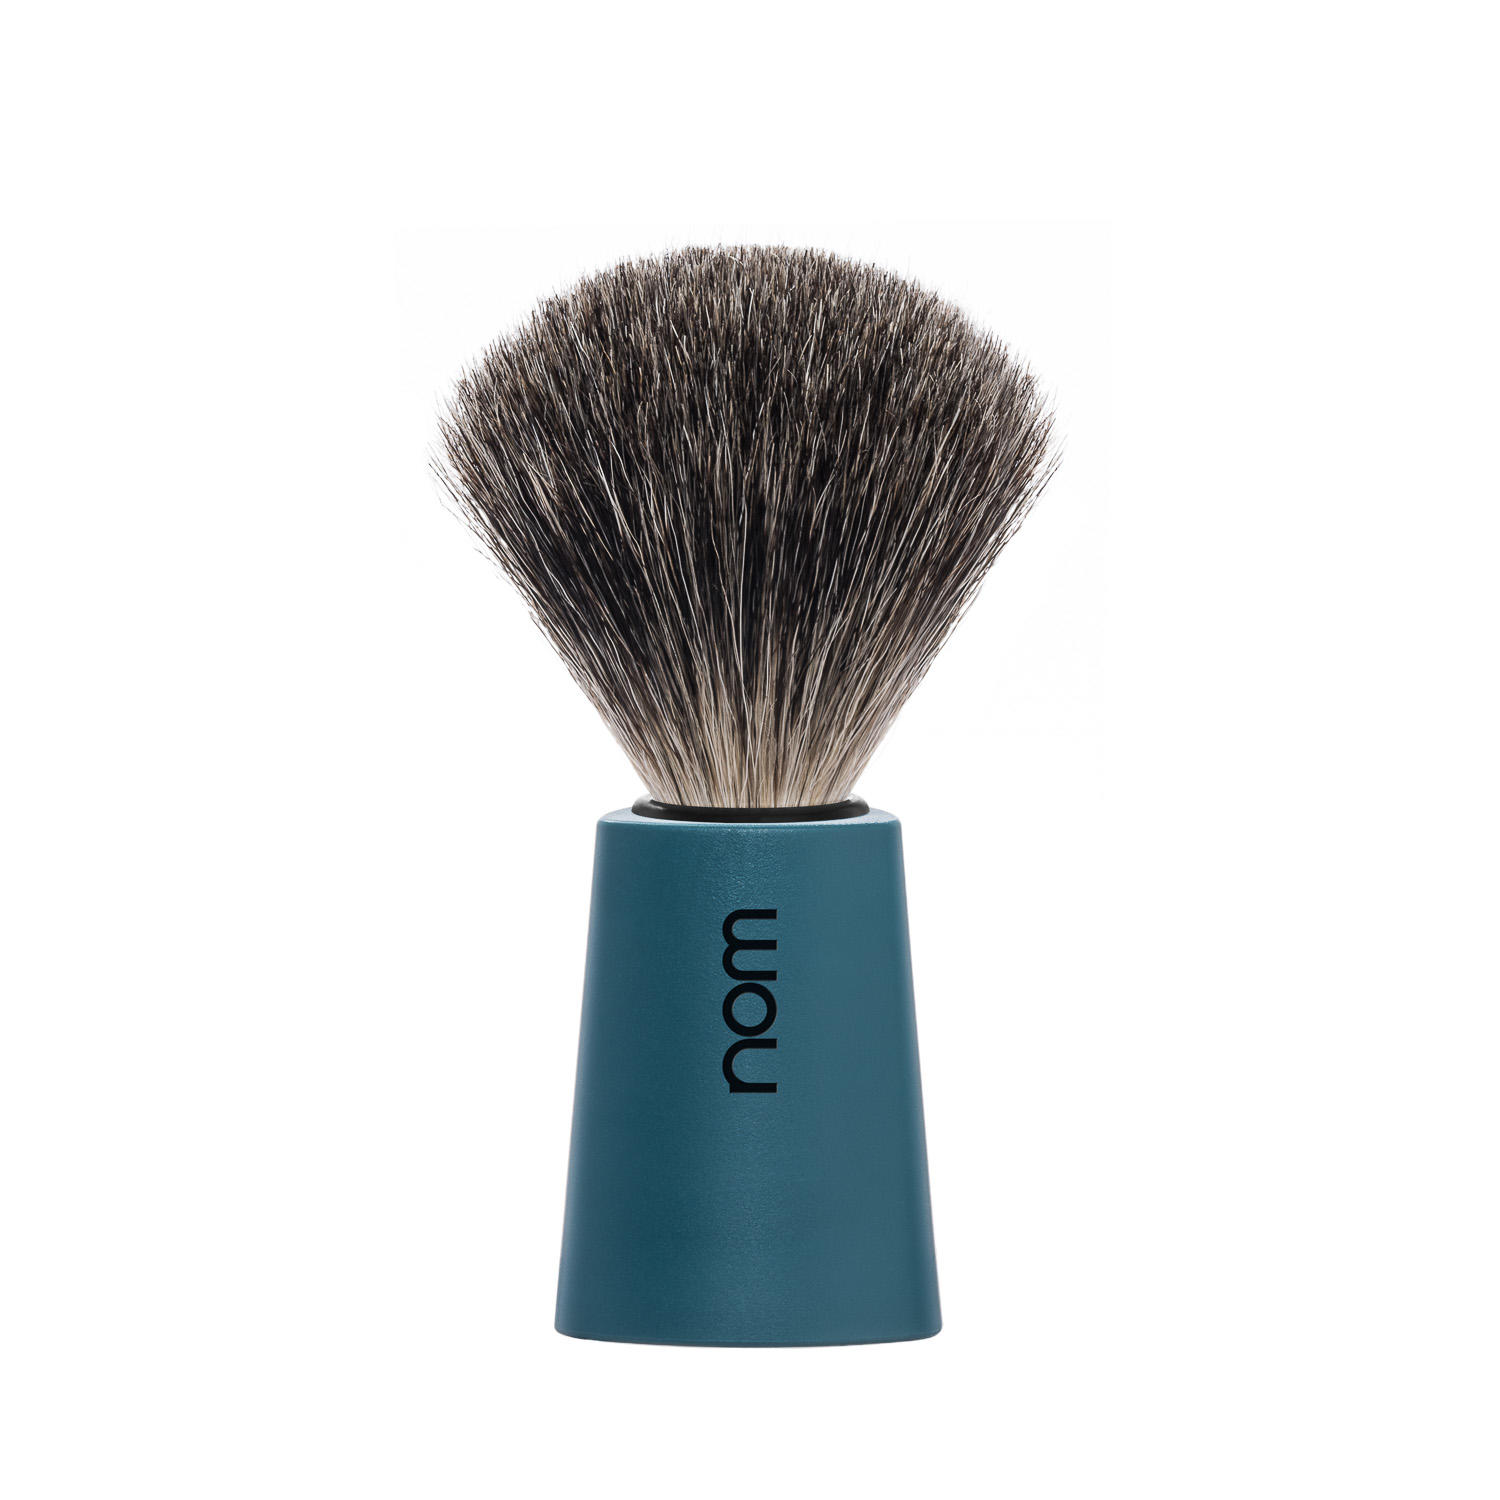 CARL81PE NOM, CARL in Petrol, Pure Badger Shaving Brush